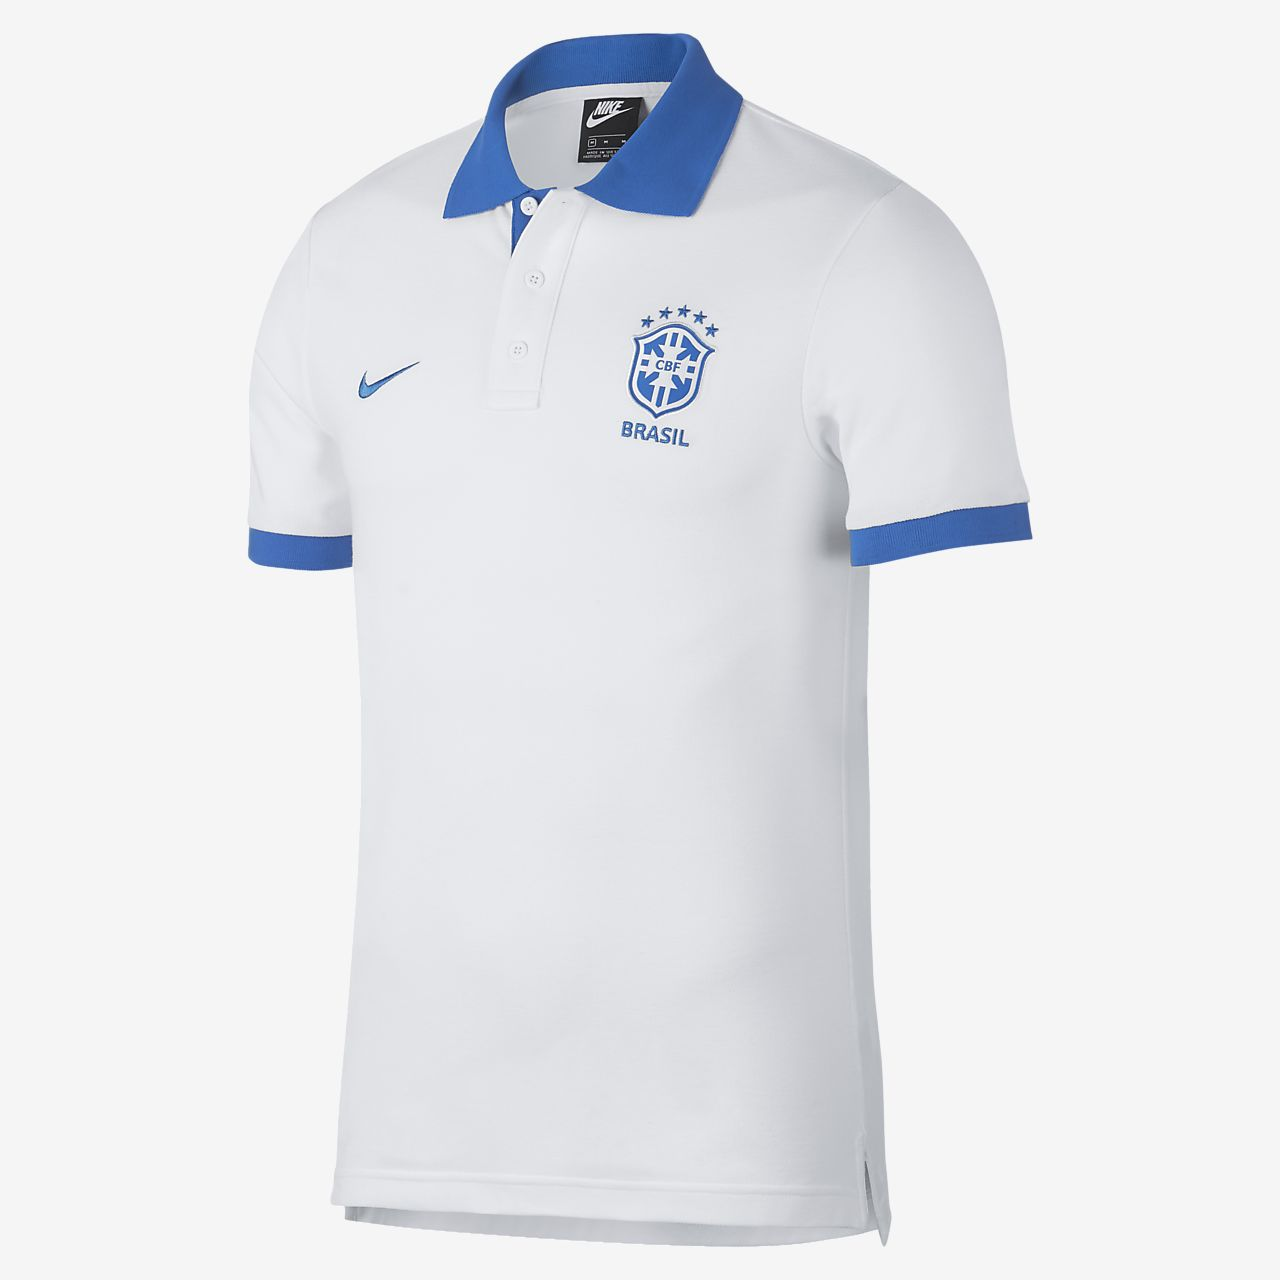 Brazil CBF Men's Football Polo